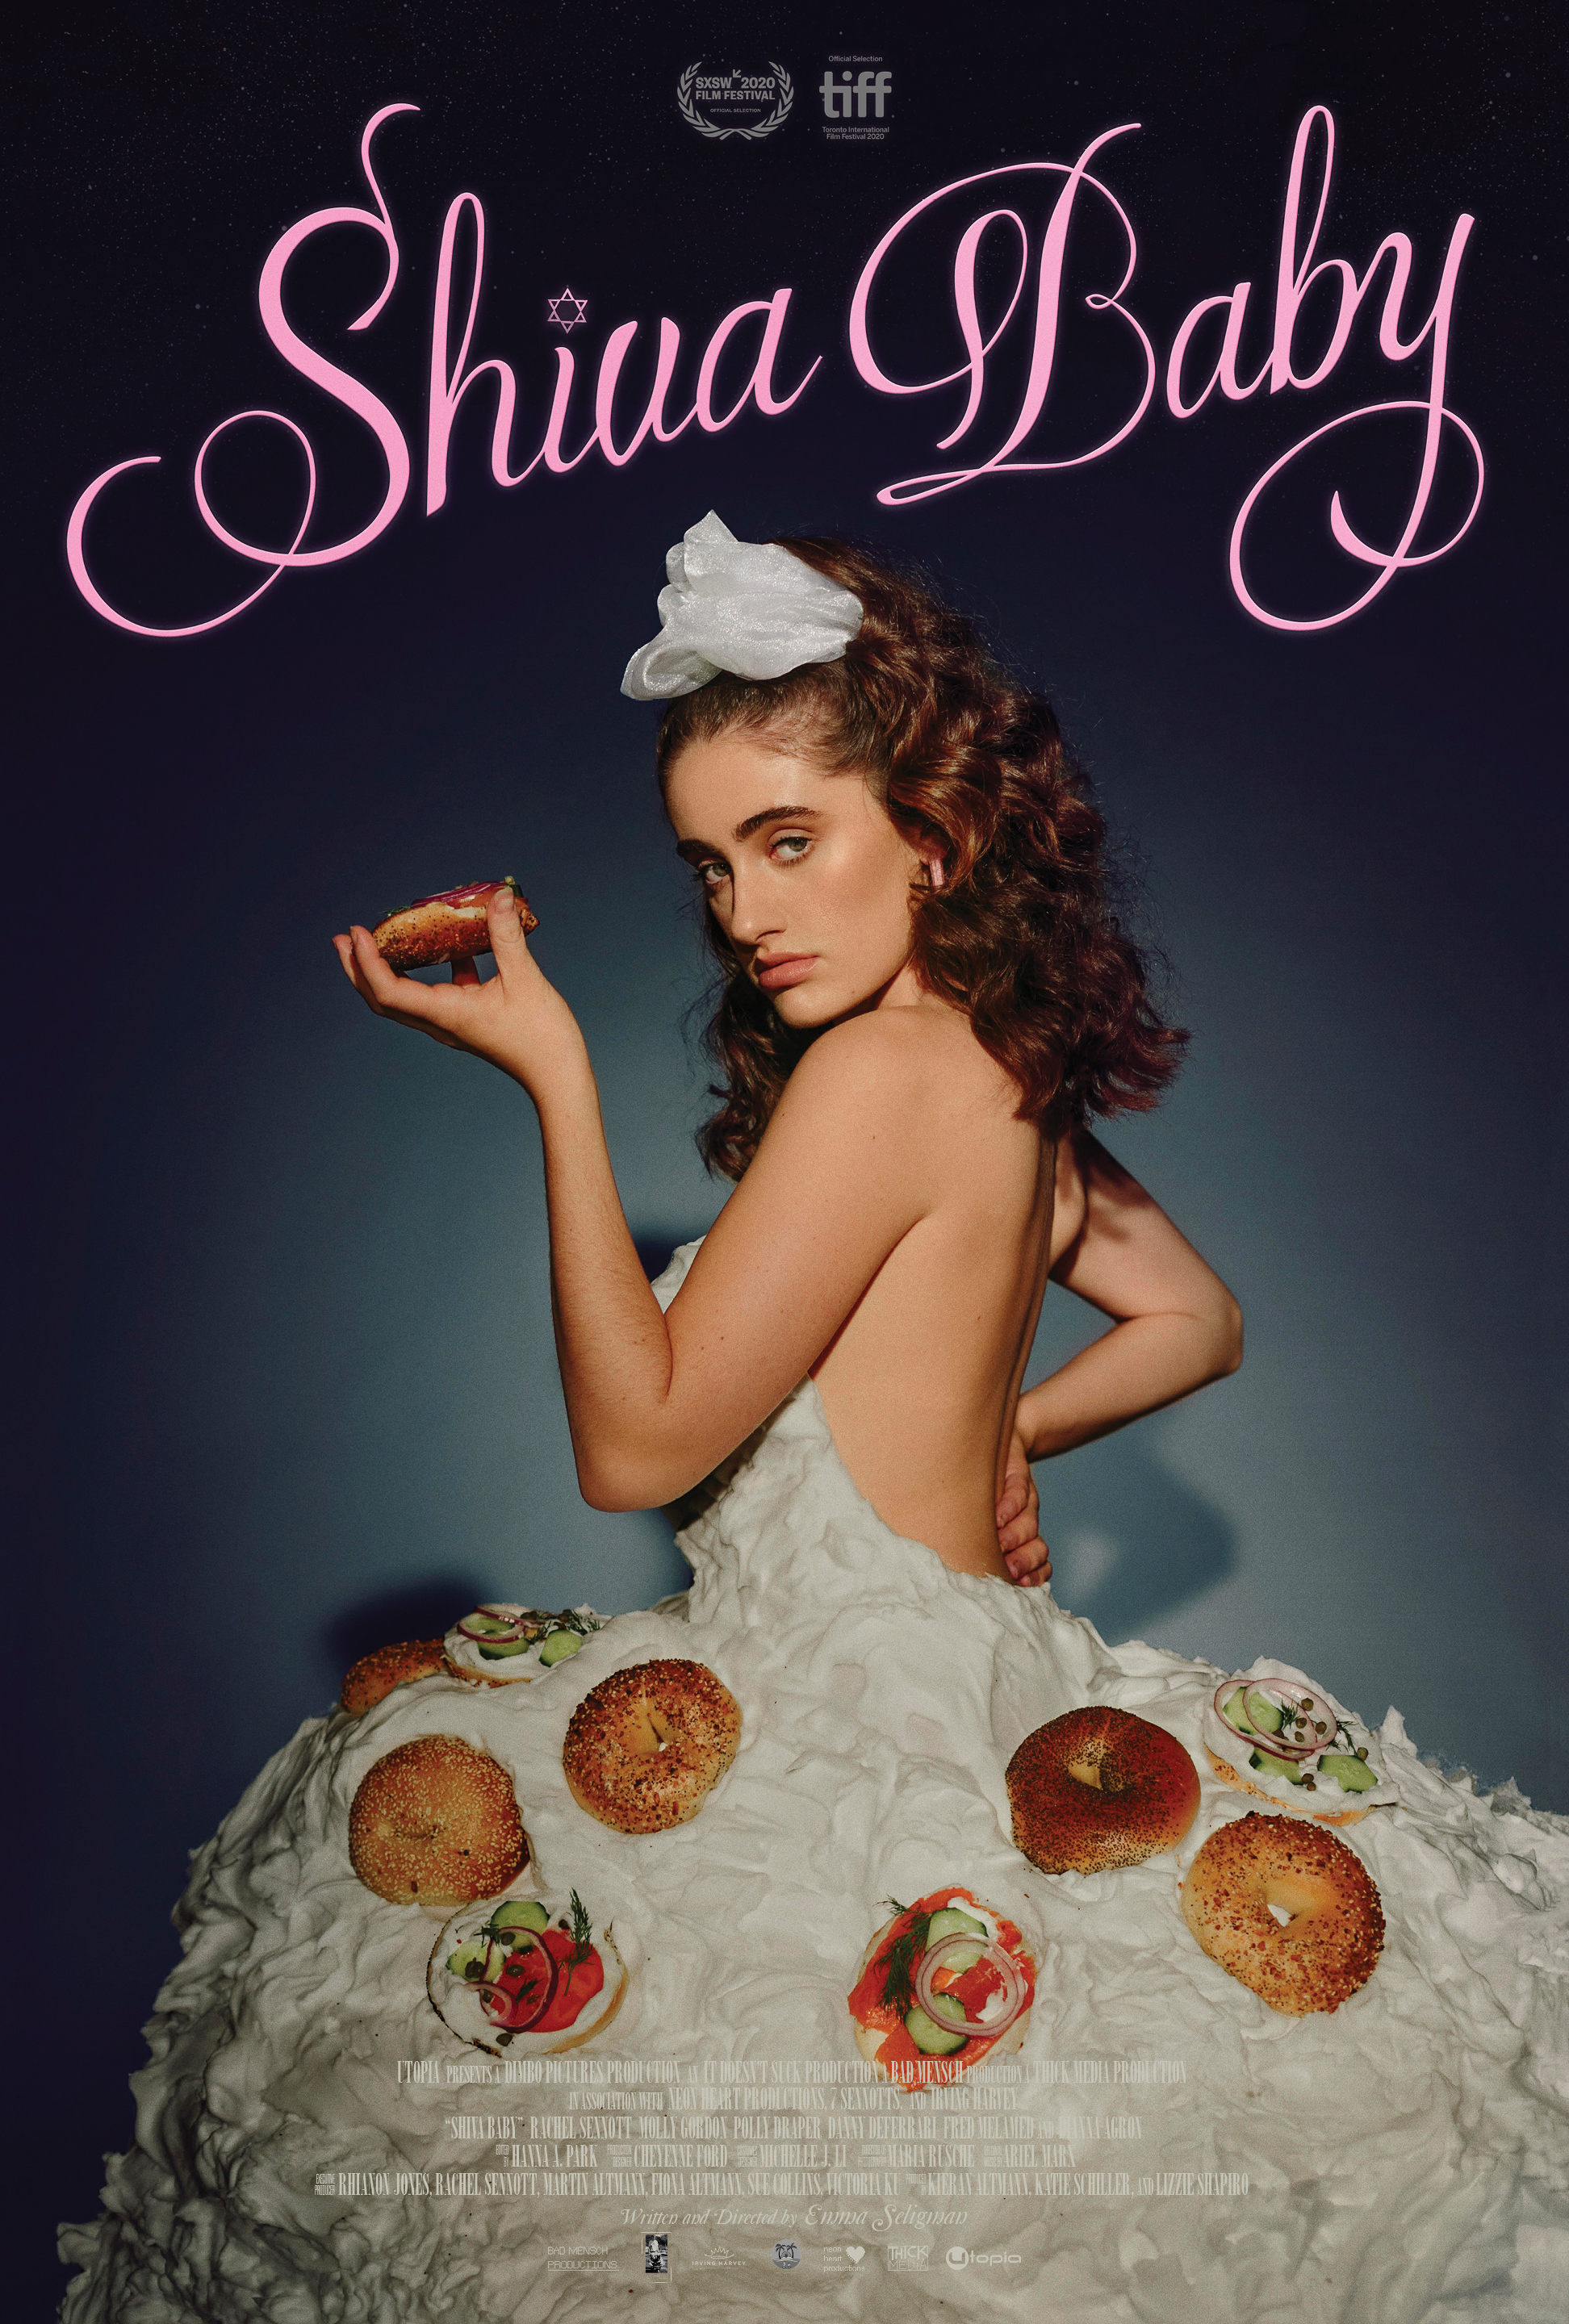 Promotional poster for SHIVA BABY